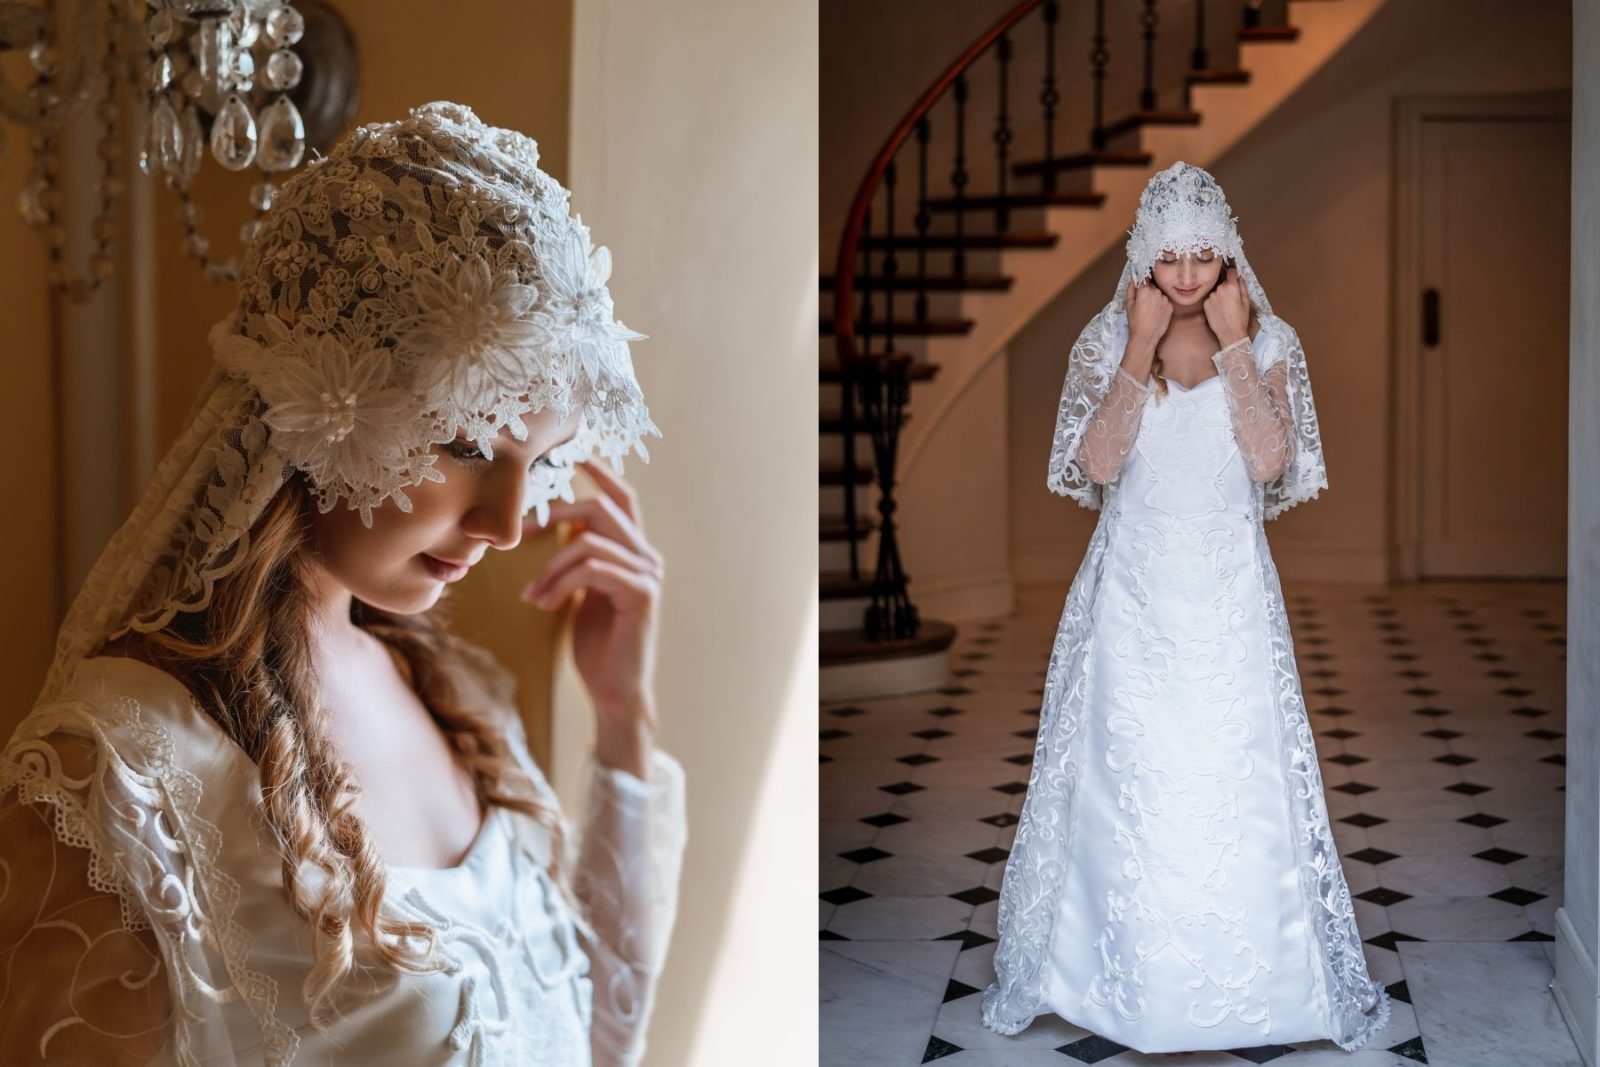 Padme' Amidala Wedding Dress Now Available